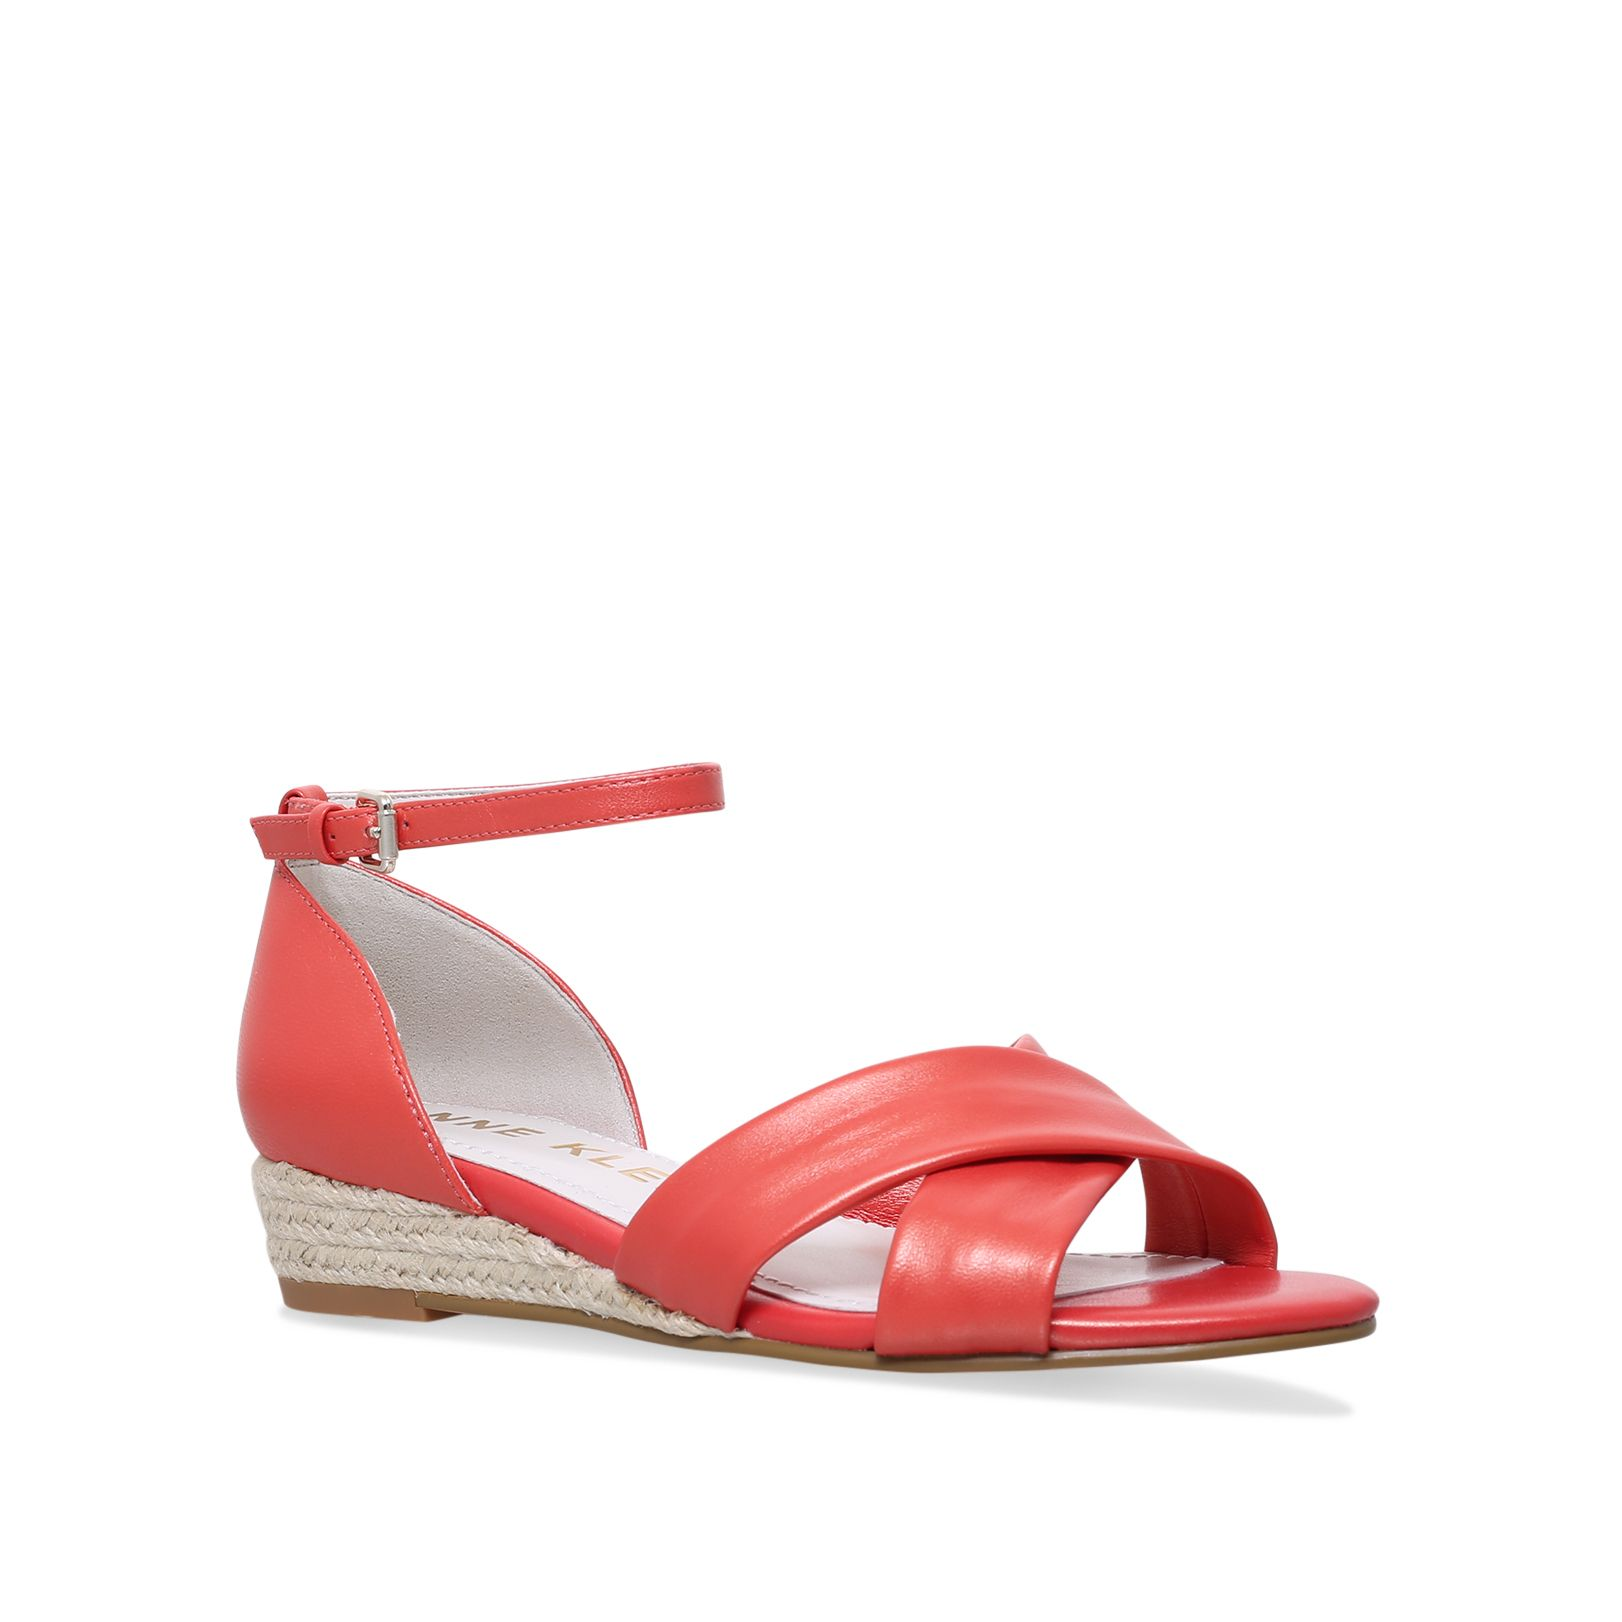 Anne Klein Nanetta Sandals, Orange